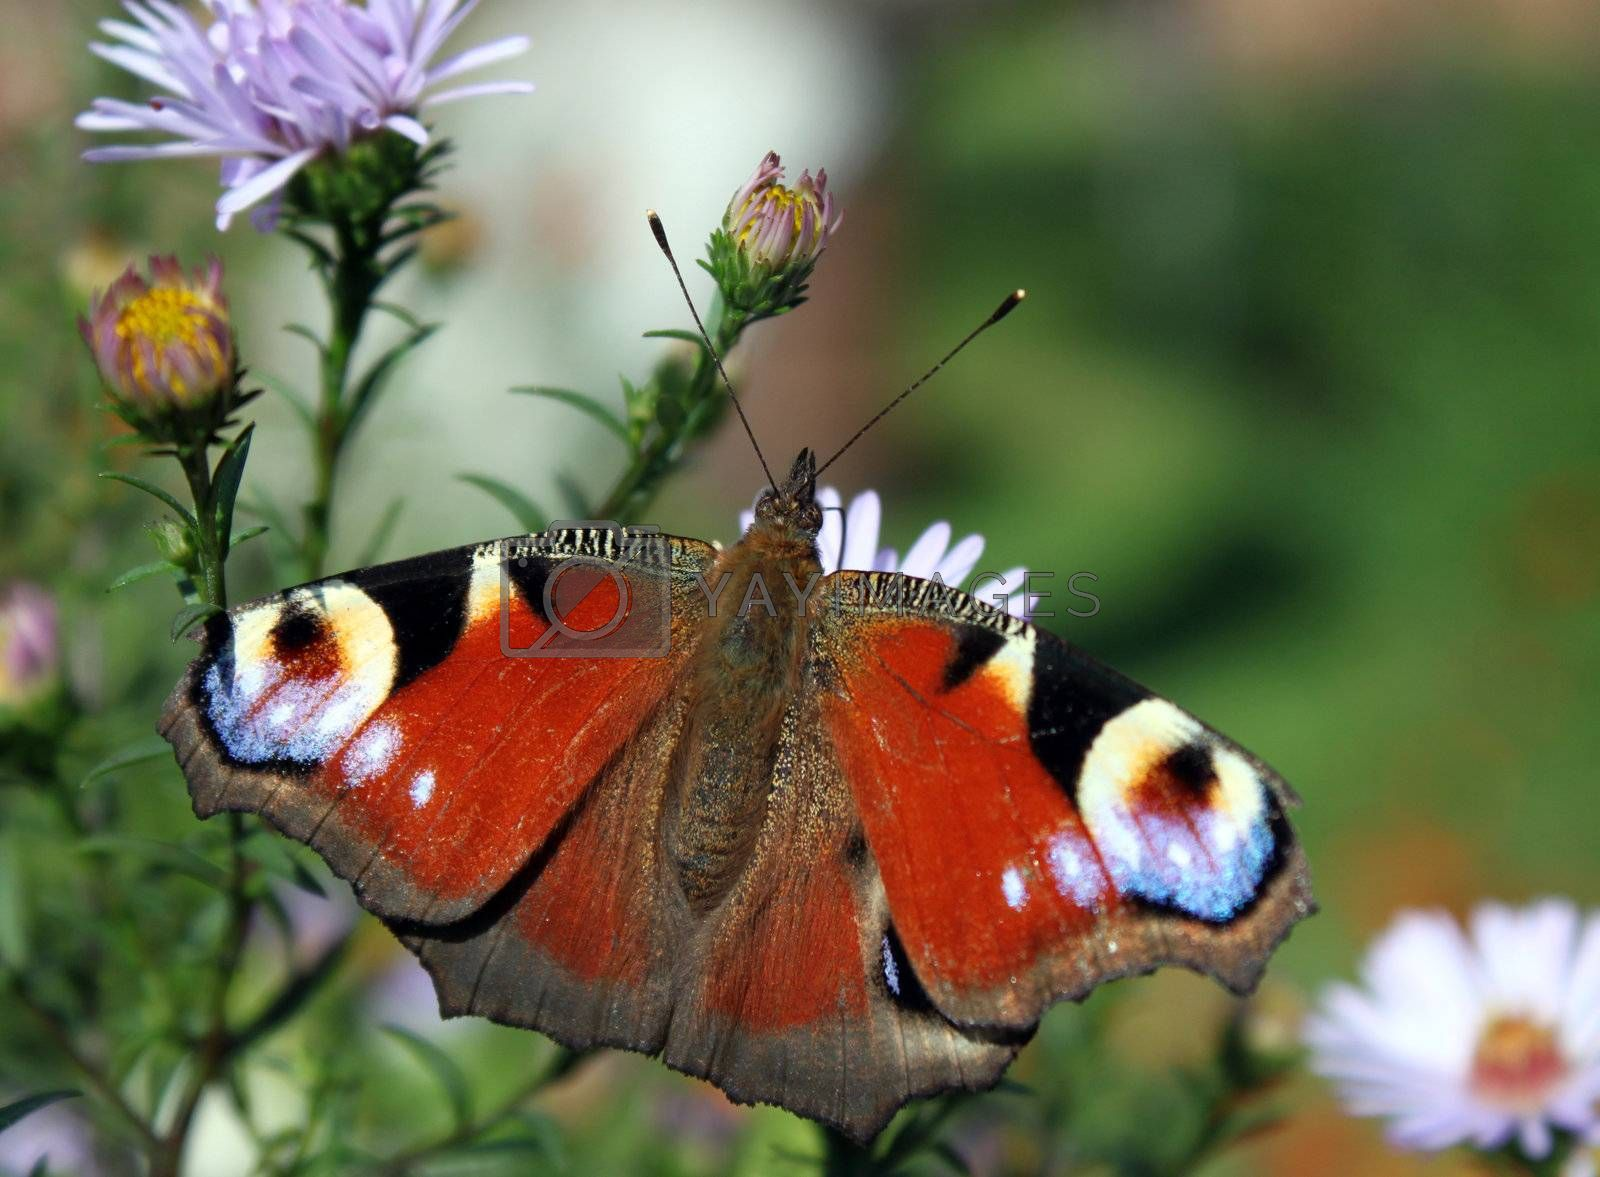 butterfly (european peacock) sitting on flower (chrysanthemum)